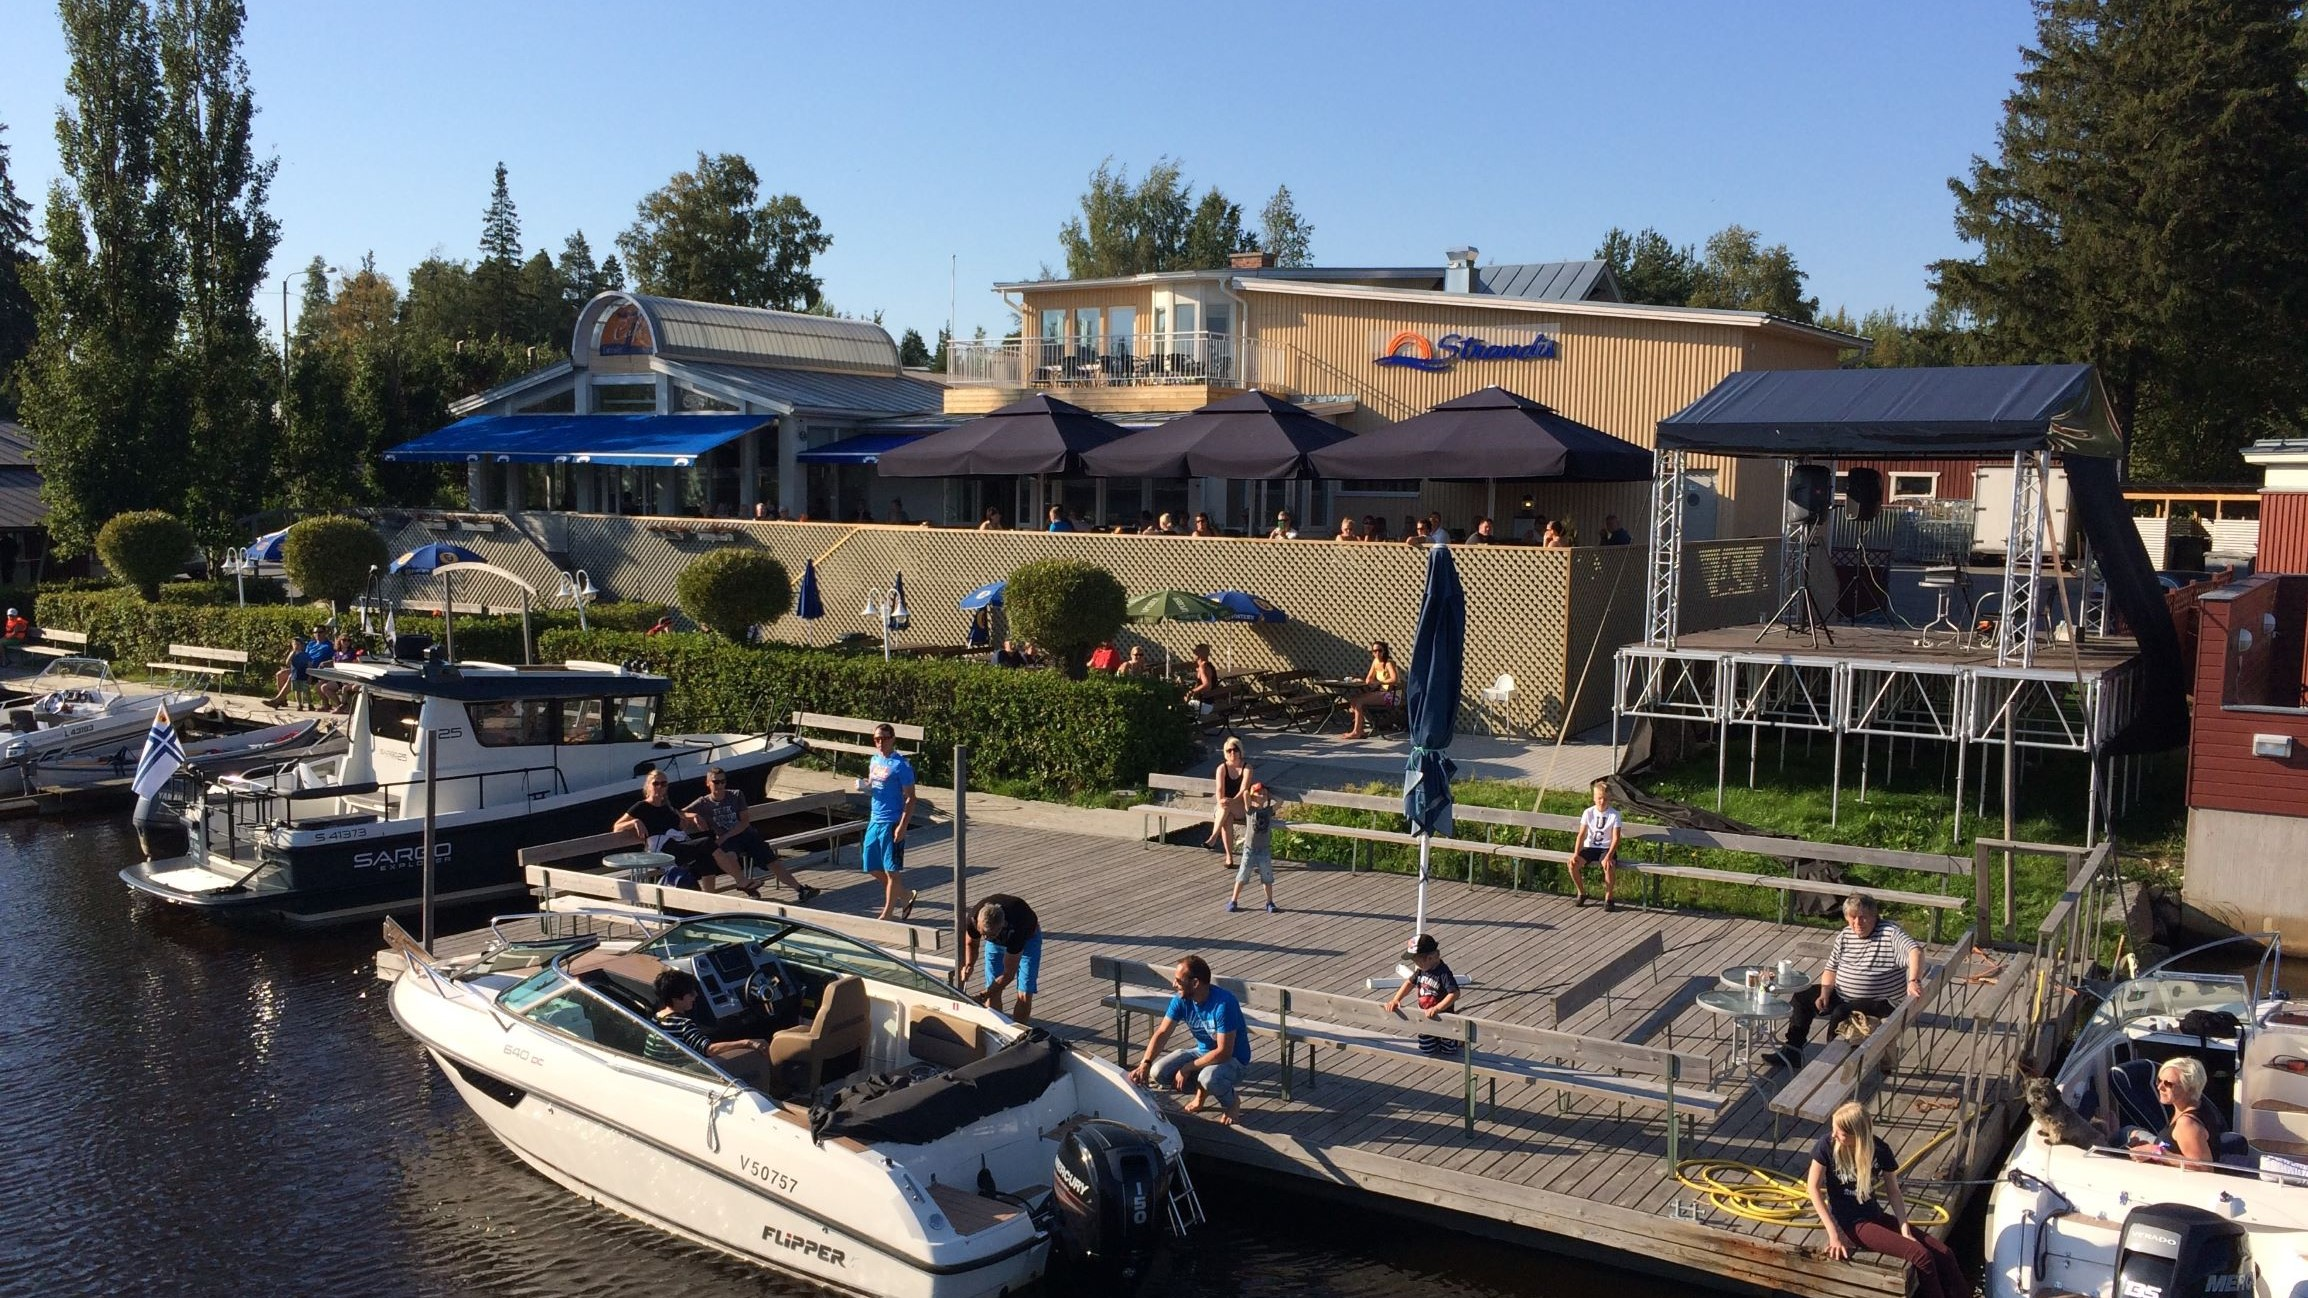 A bunch of people are sitting on the terrace and dock of Strandis on a summer day